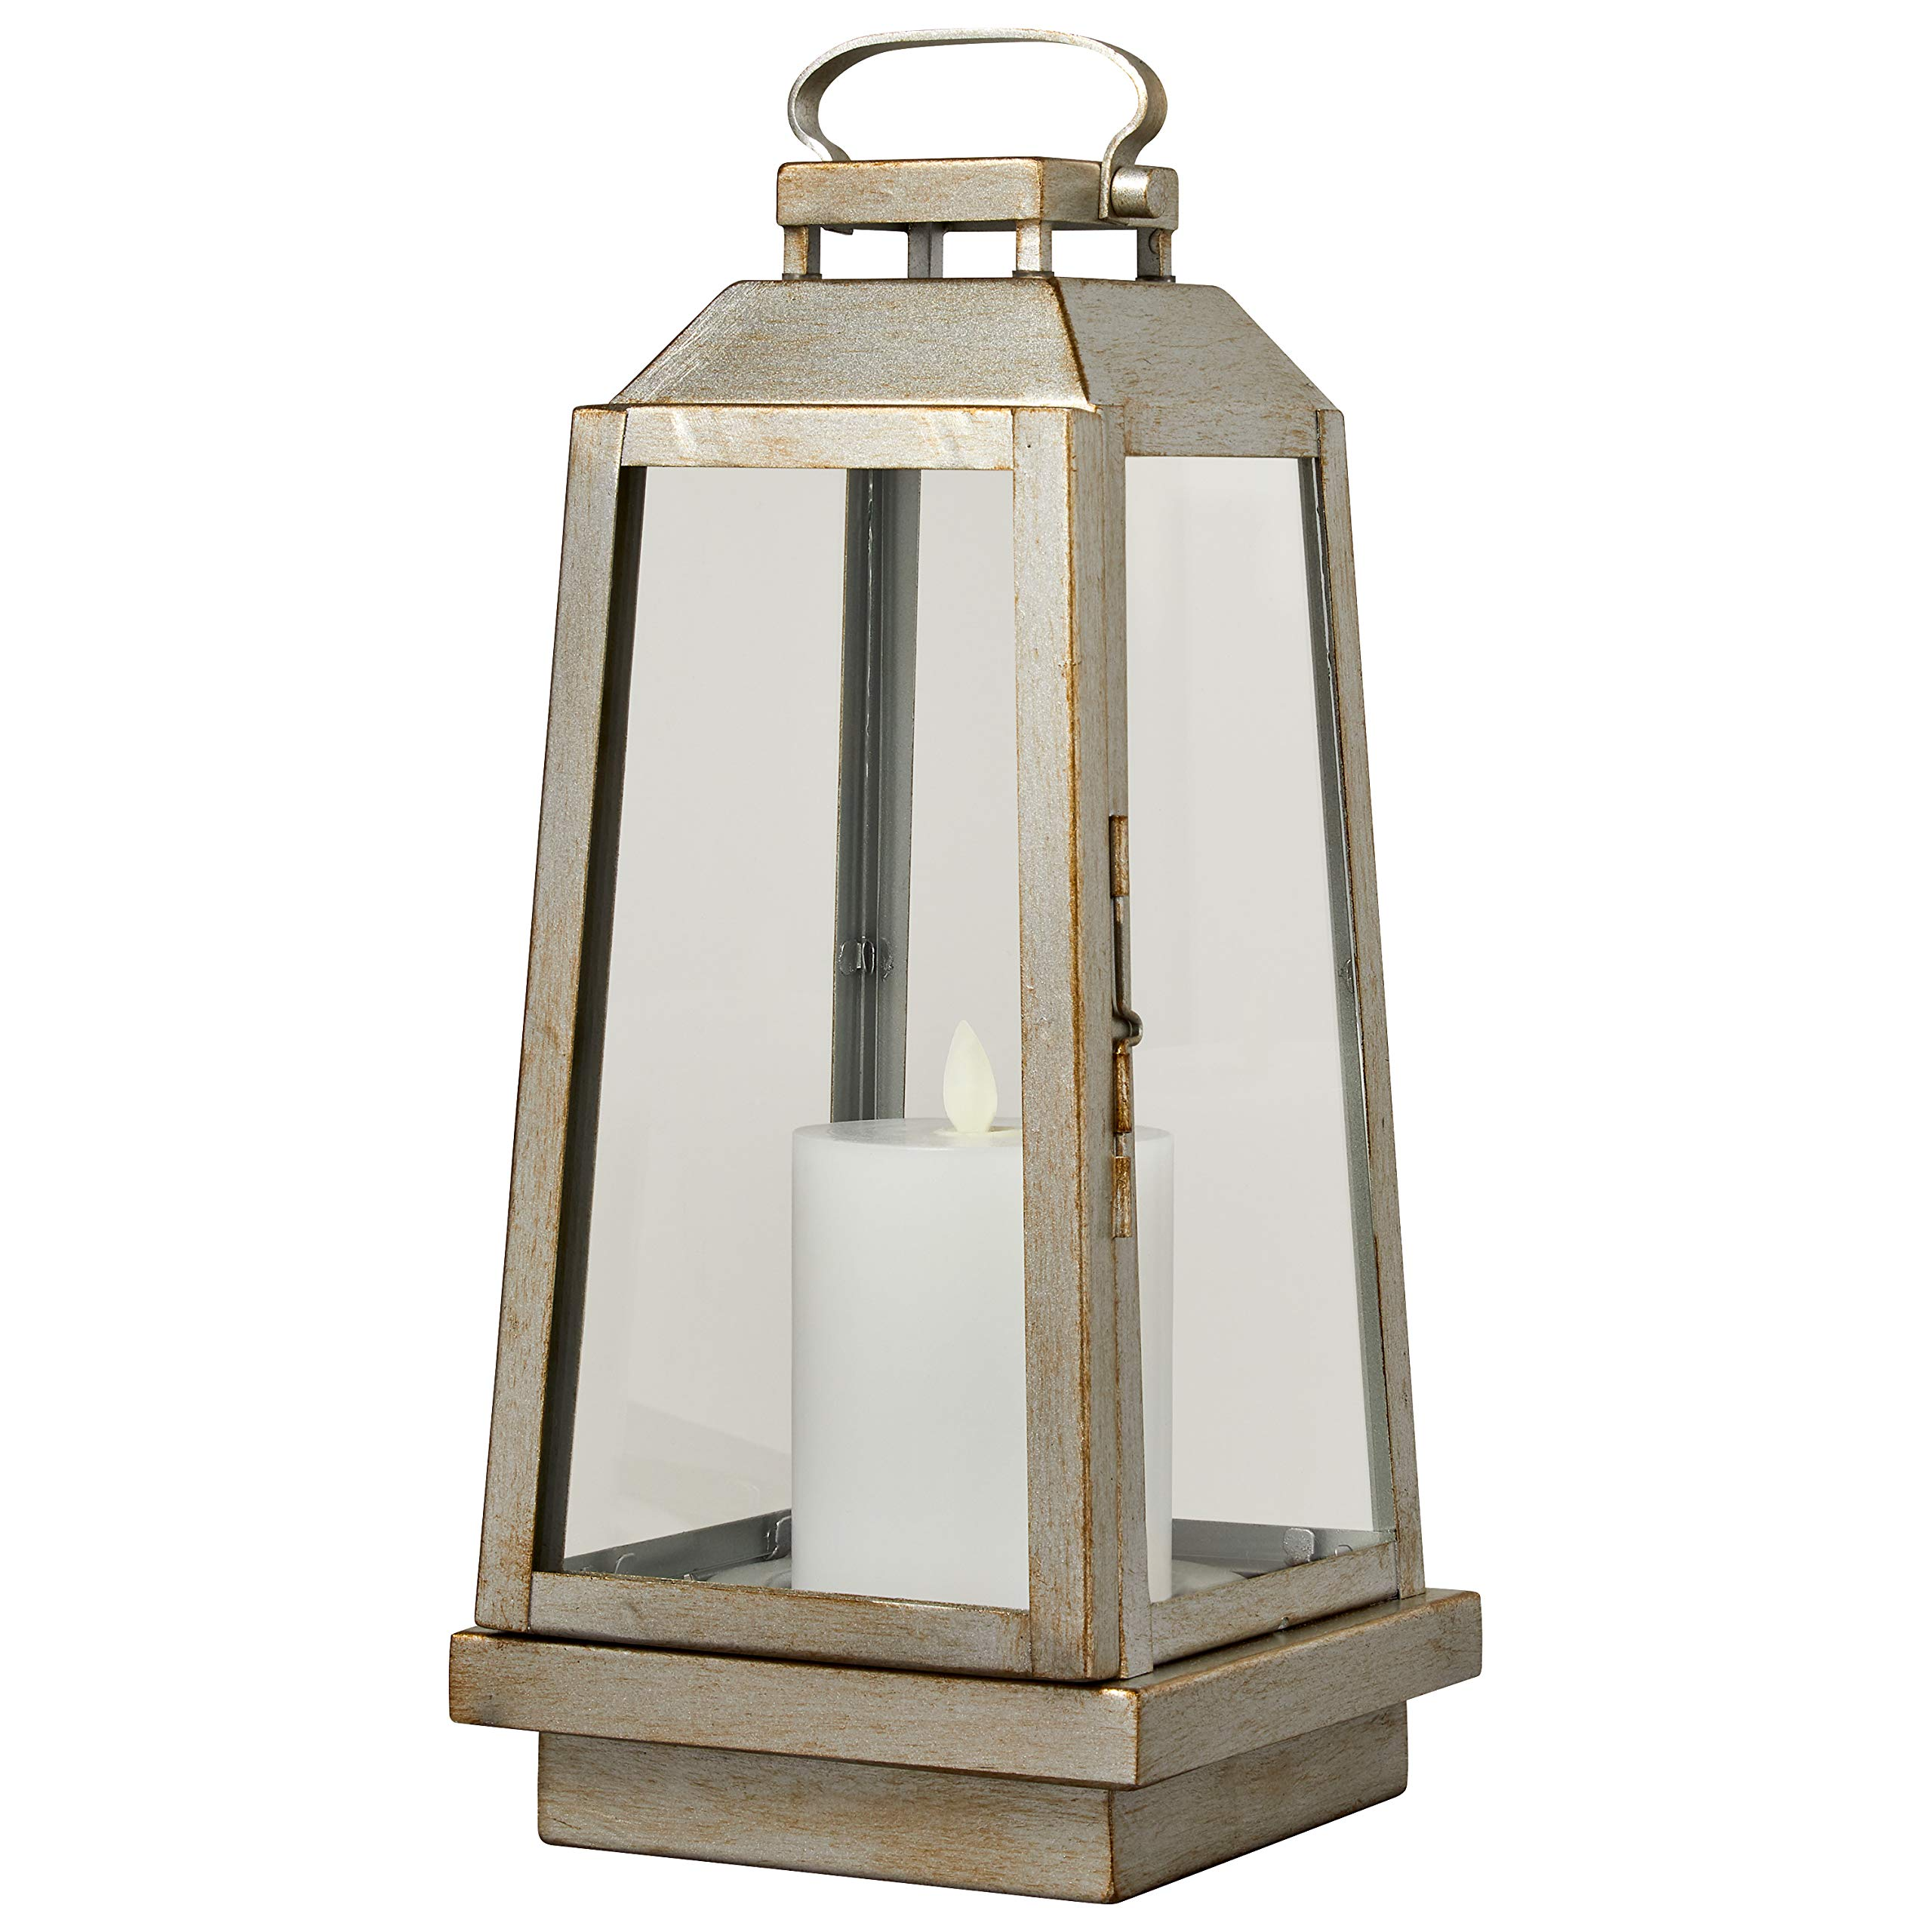 Stone & Beam Modern Traditional Decorative Metal and Glass Lantern with Candle, 14''H, Champagne Silver, For Indoor Outdoor Use